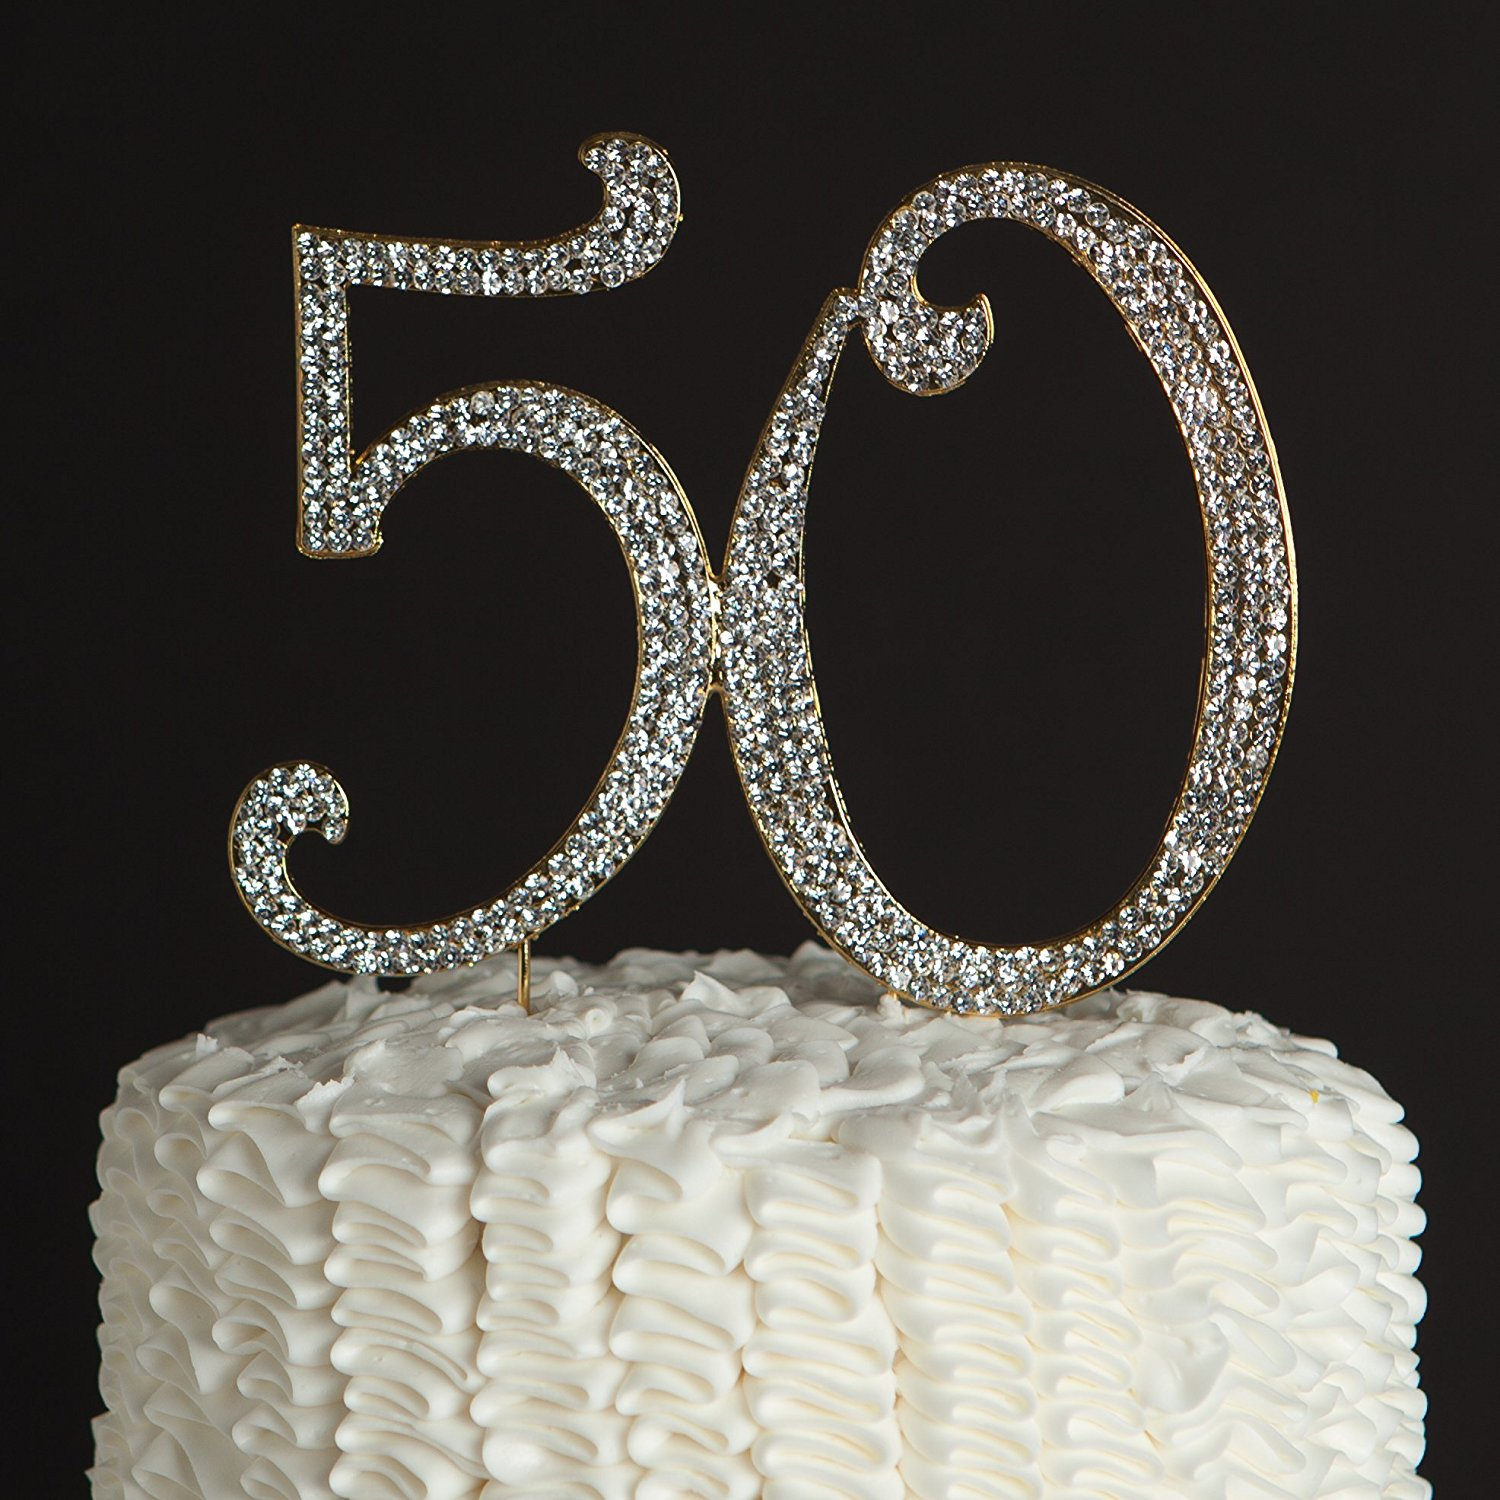 50 Cake Topper for 50th Birthday or Anniversary Party Rhinestone